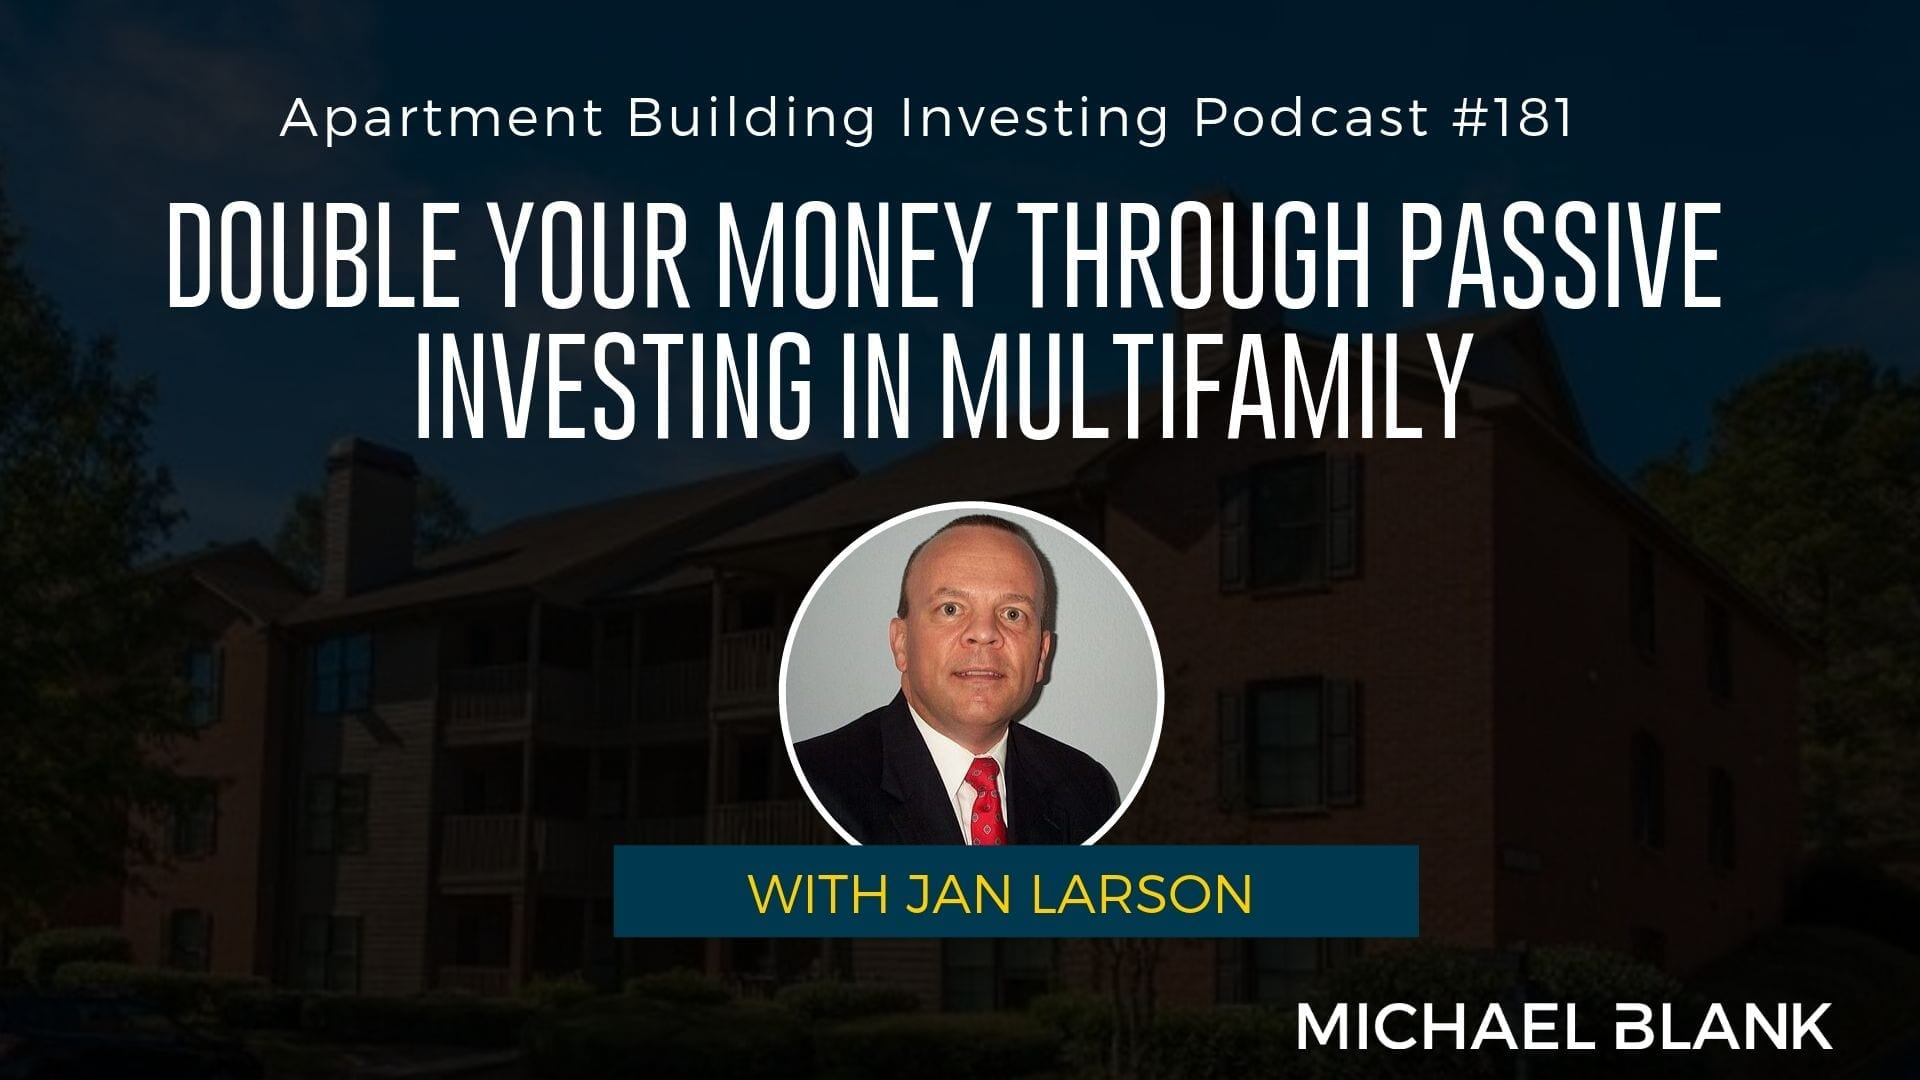 MB 181: Double Your Money Through Passive Investing in Multifamily – With Jan Larson